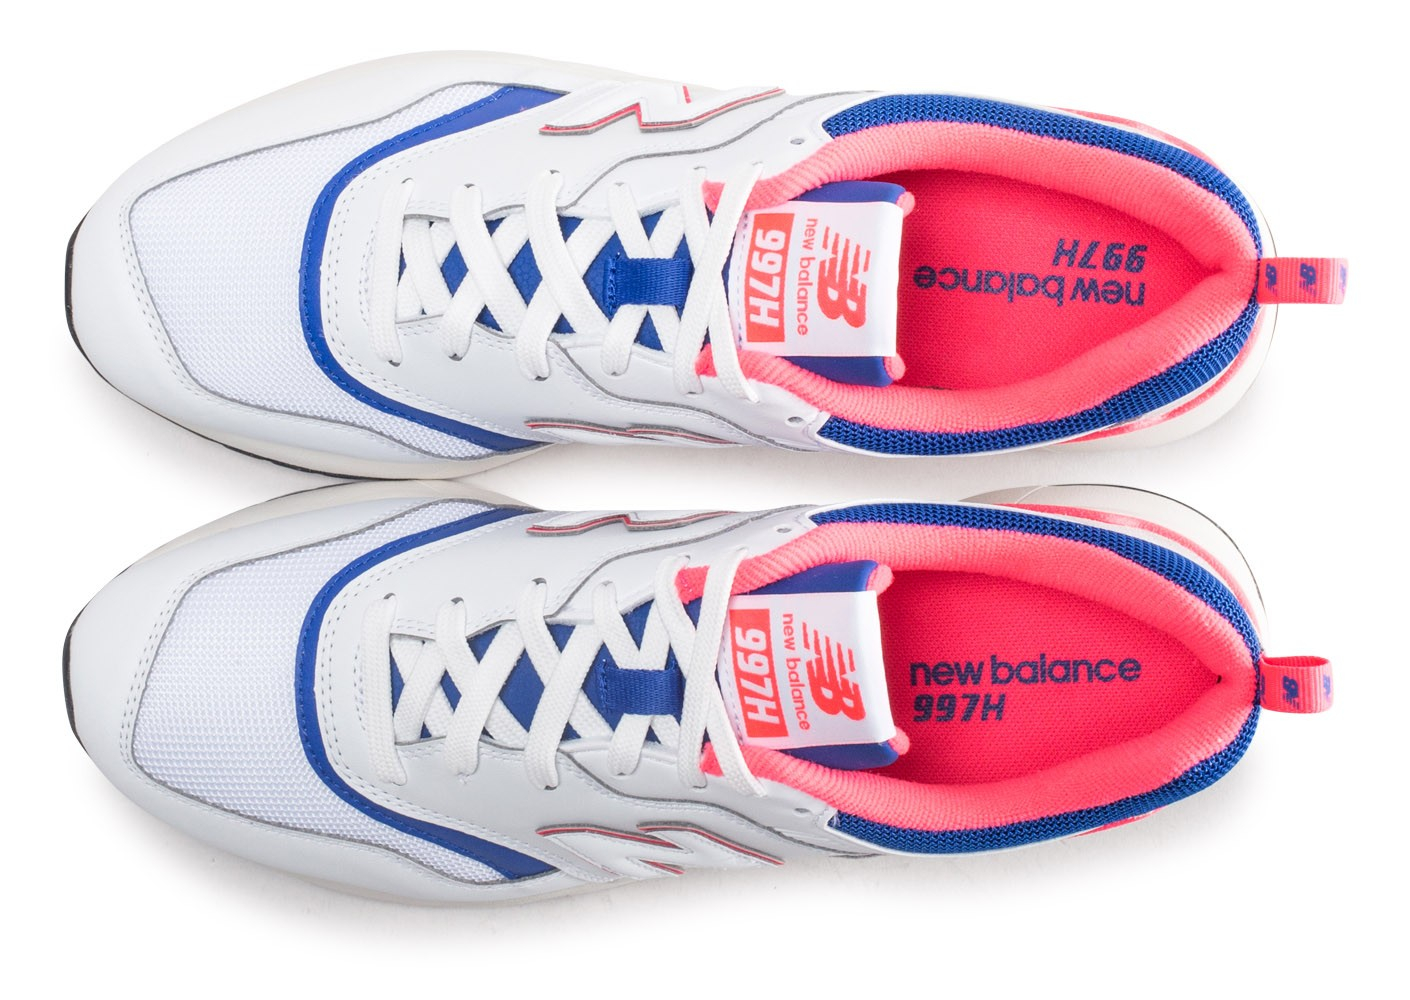 Sneaker Style Laserblue'' Balance ''whitepink New 997h e2Y9EIDHW